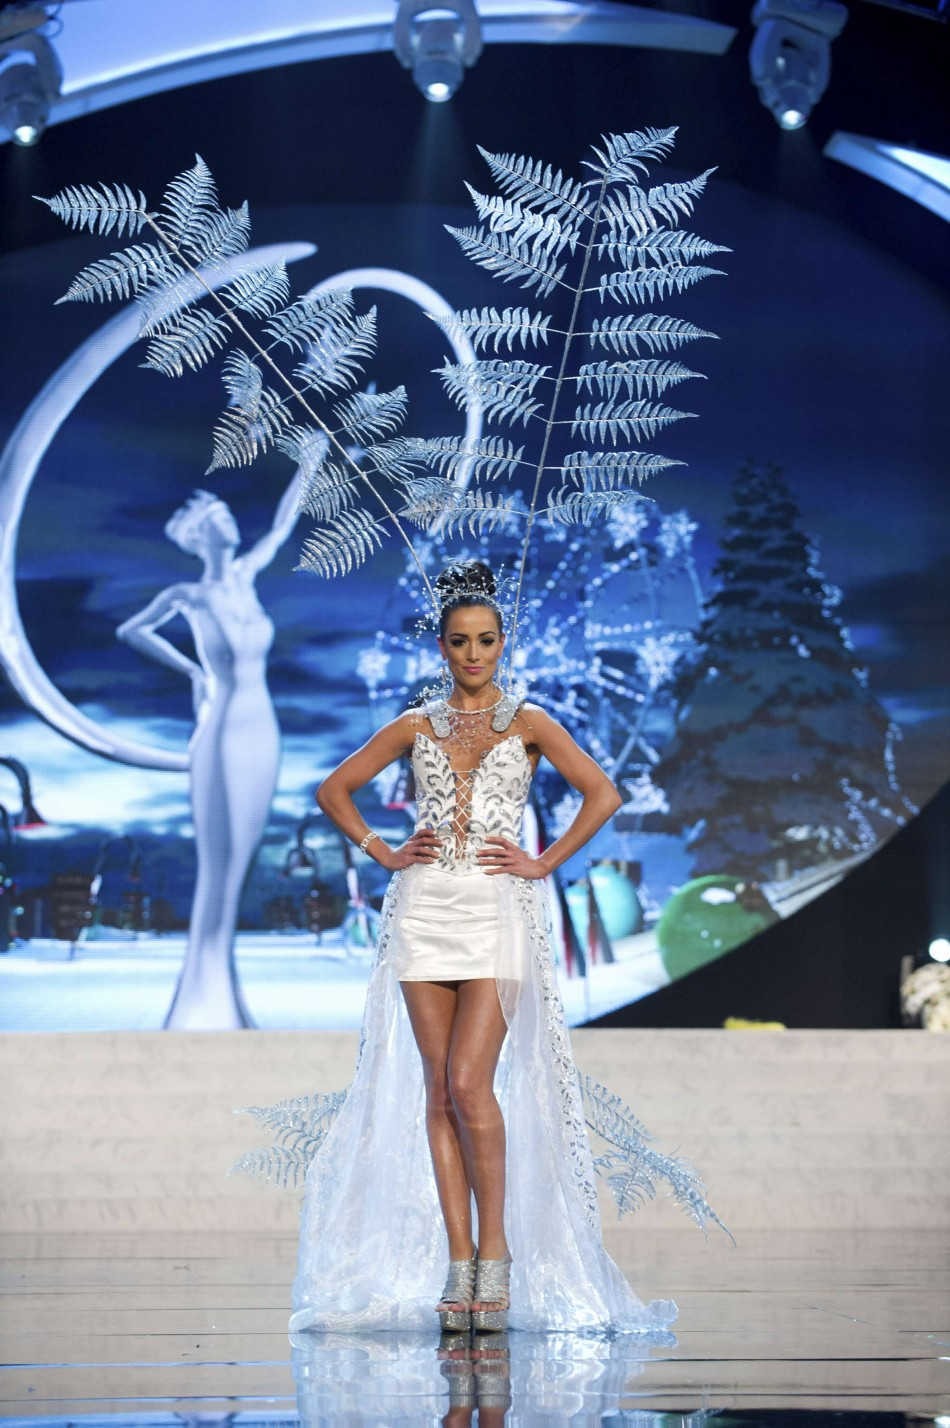 Miss New Zealand Talia Bennett on stage at the 2012 Miss Universe National Costume Show at PH Live in Las Vegas